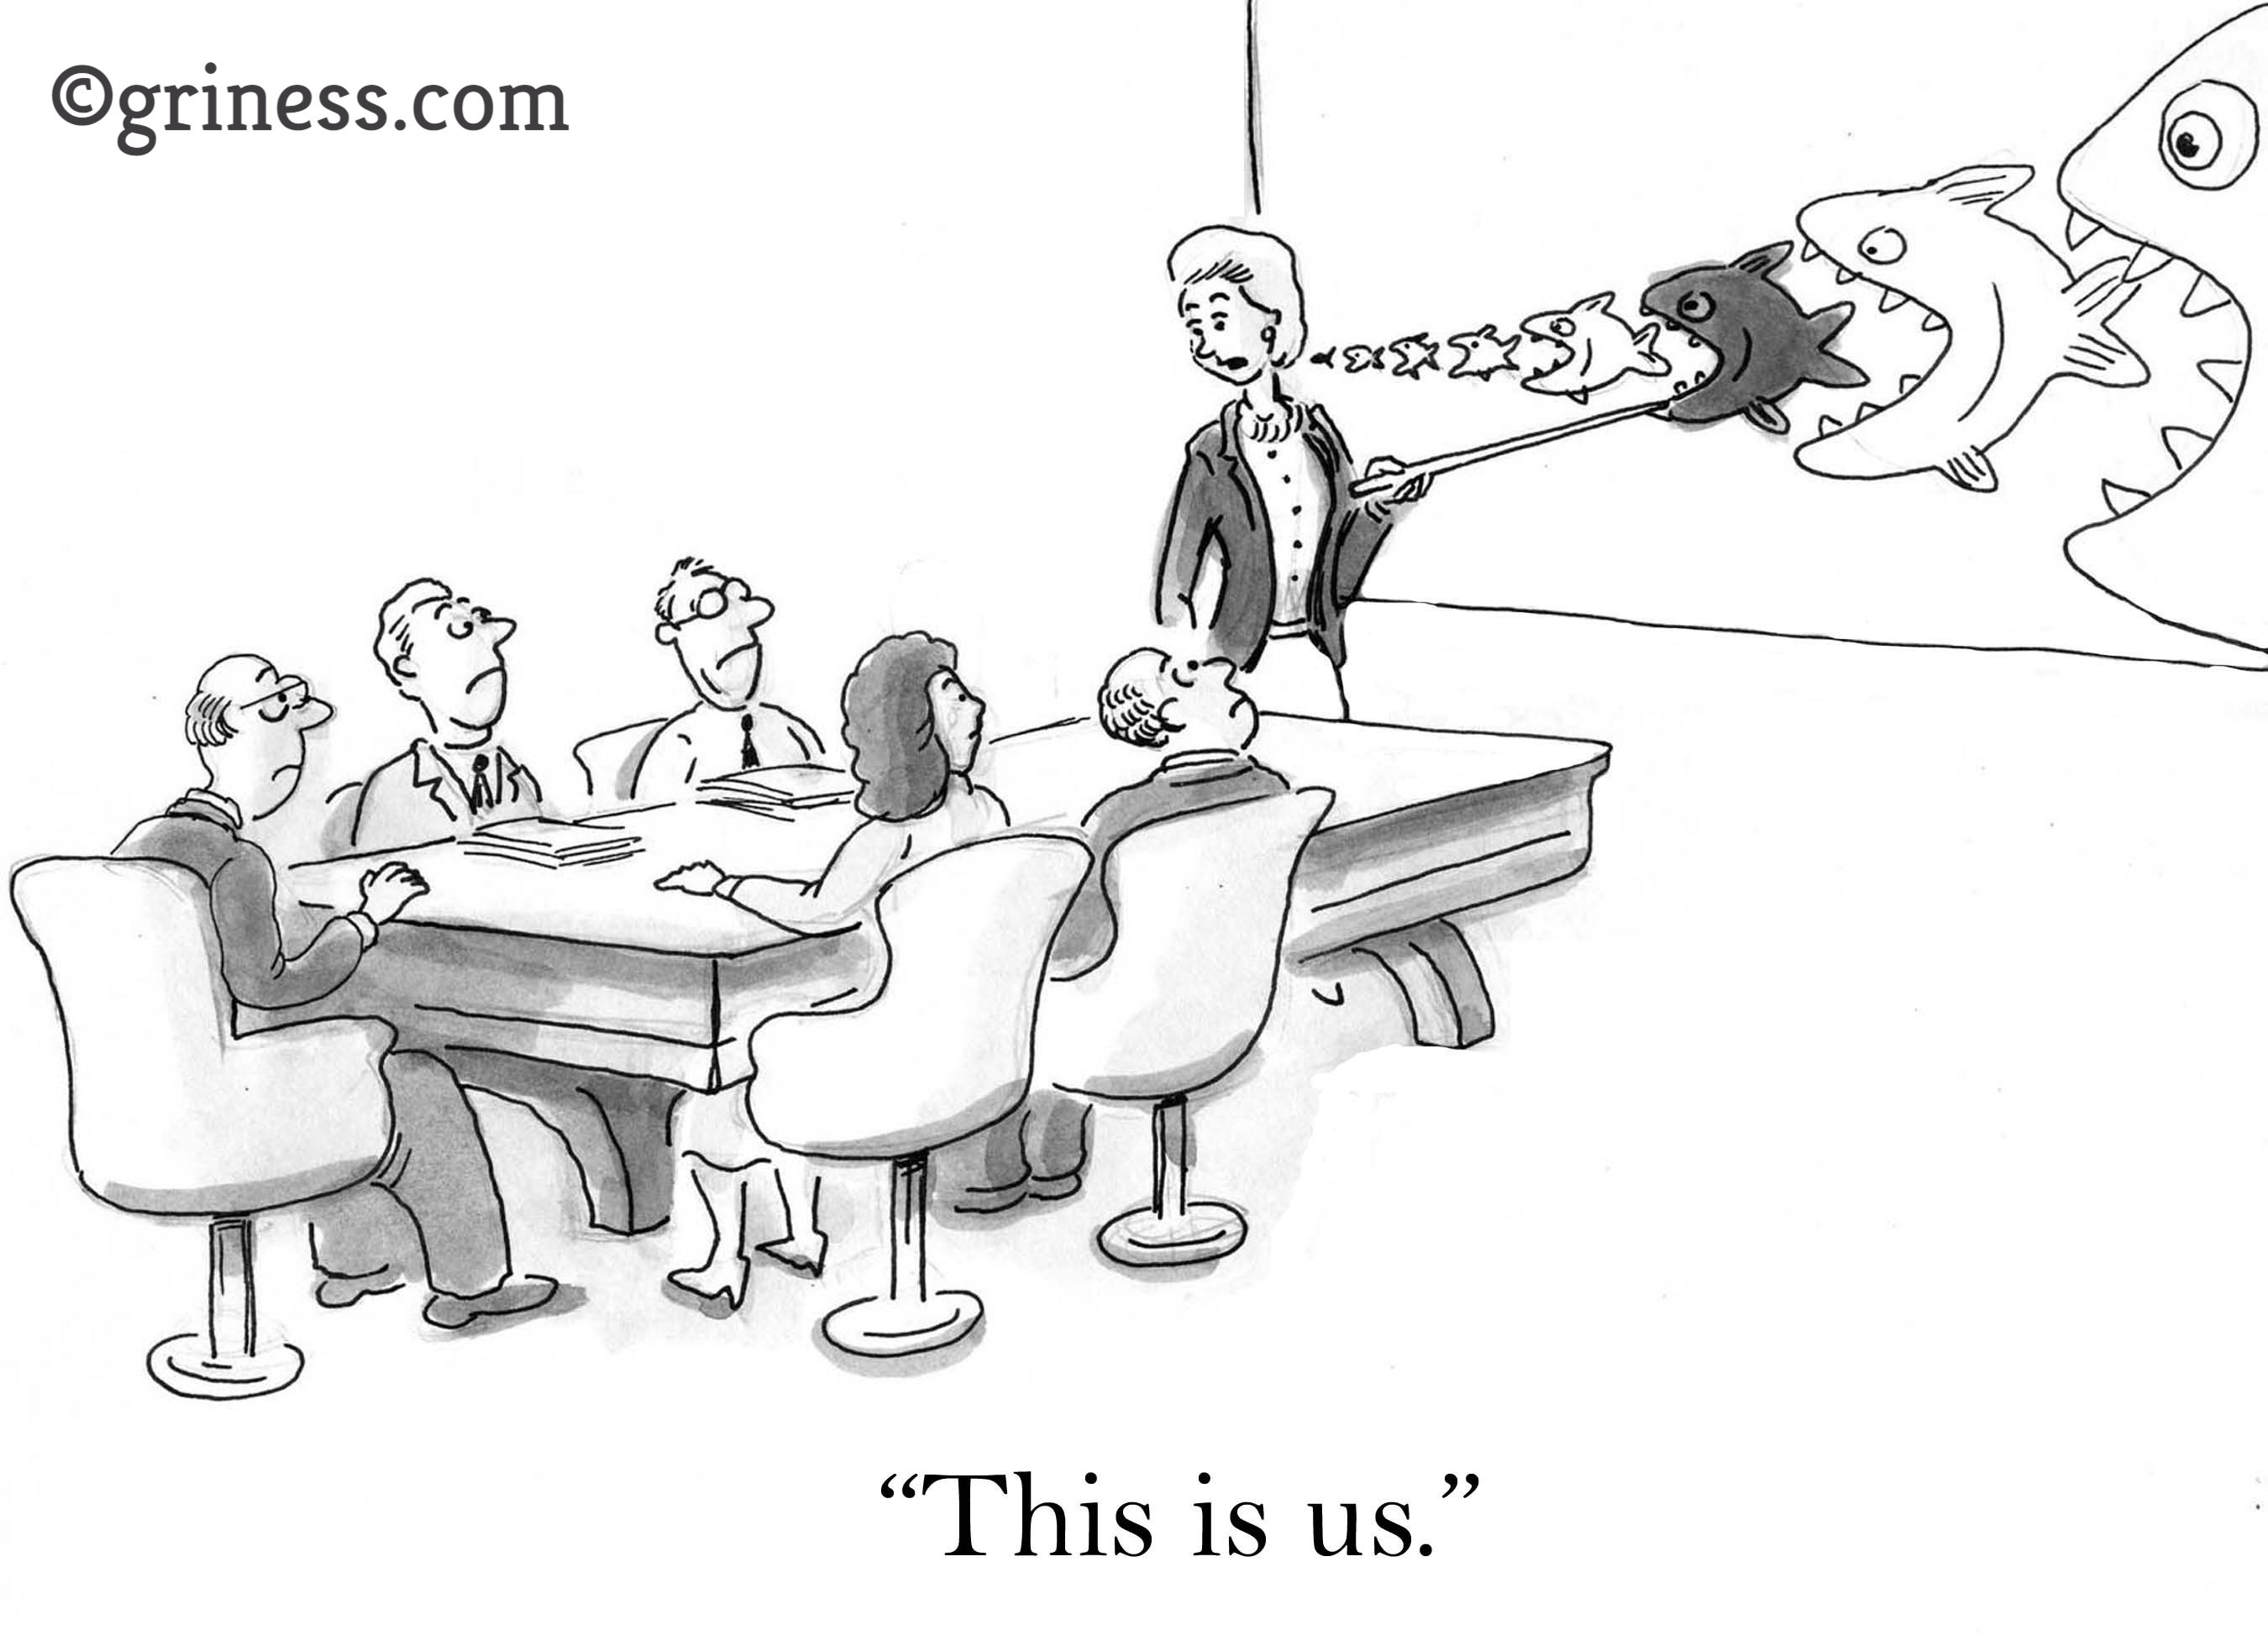 this is us competition. free business cartoons. corporate jokes